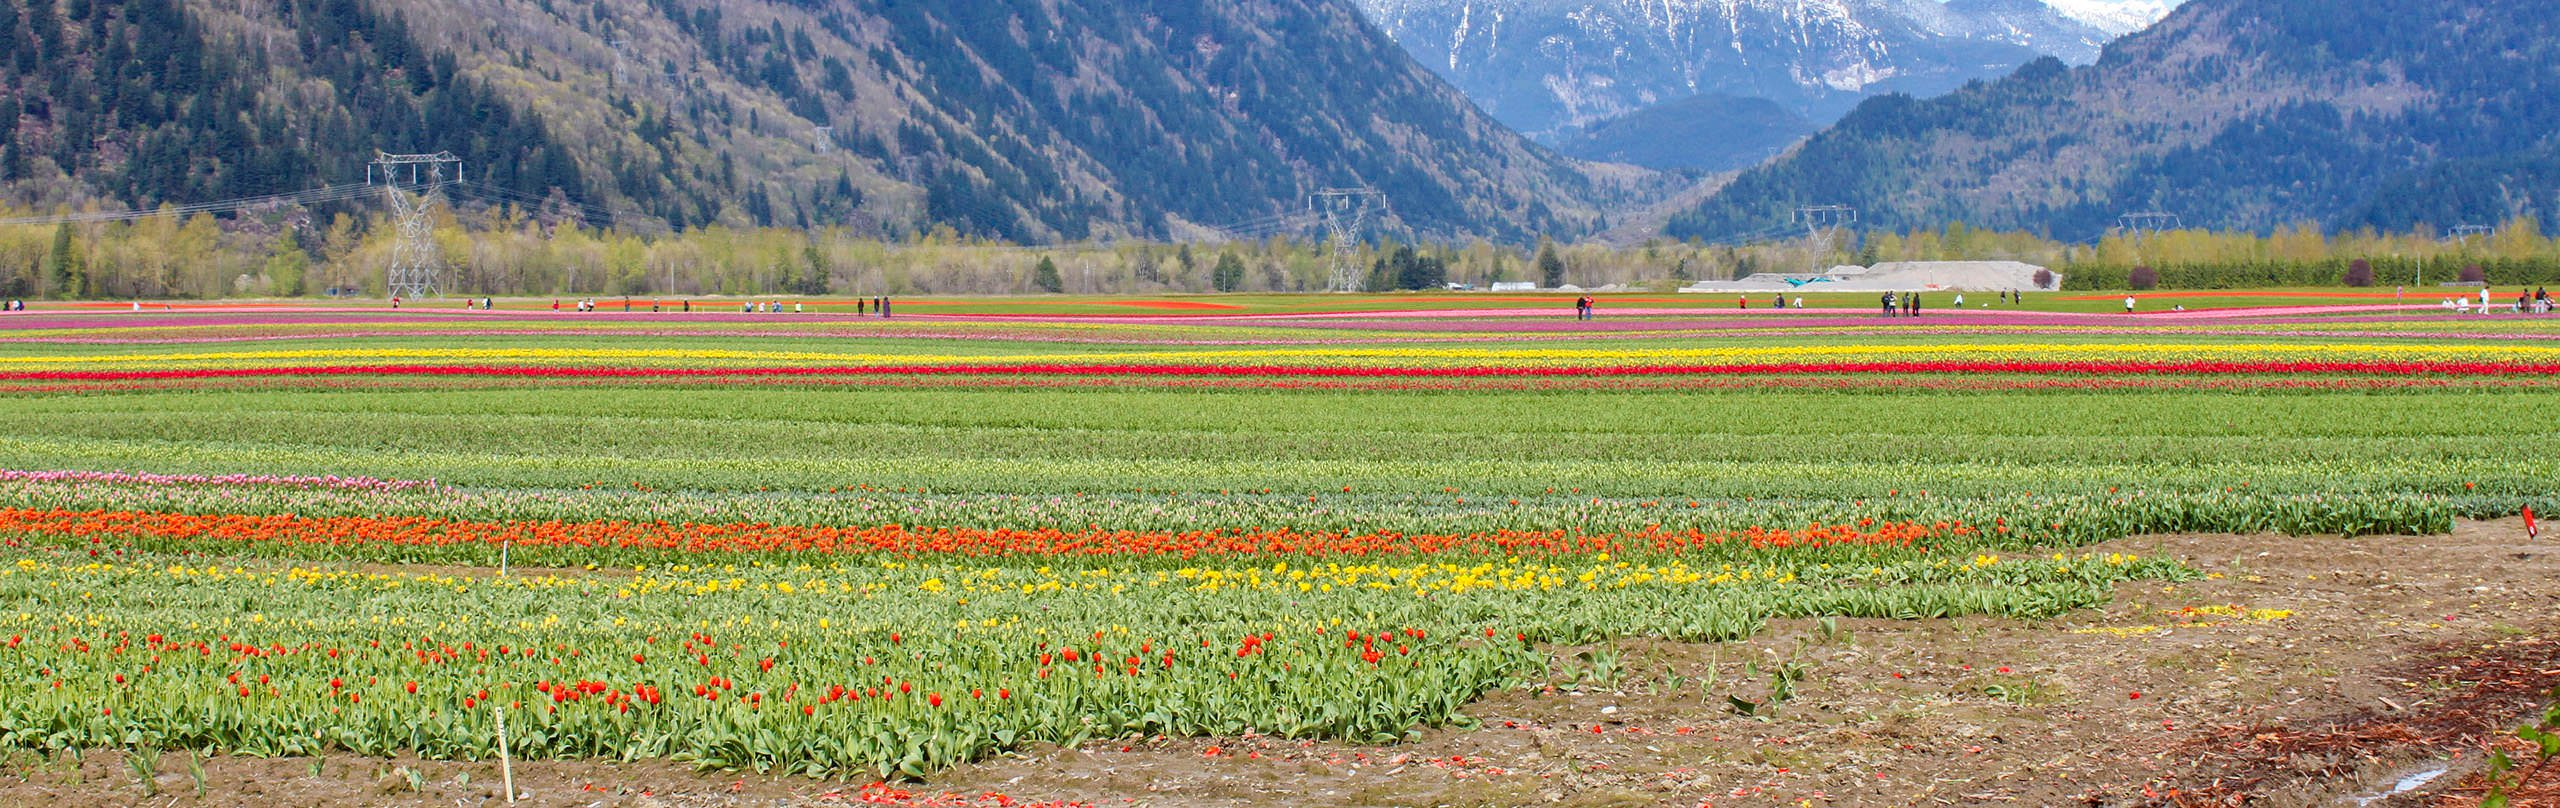 Tulips in the fields near Abbotsford, BC